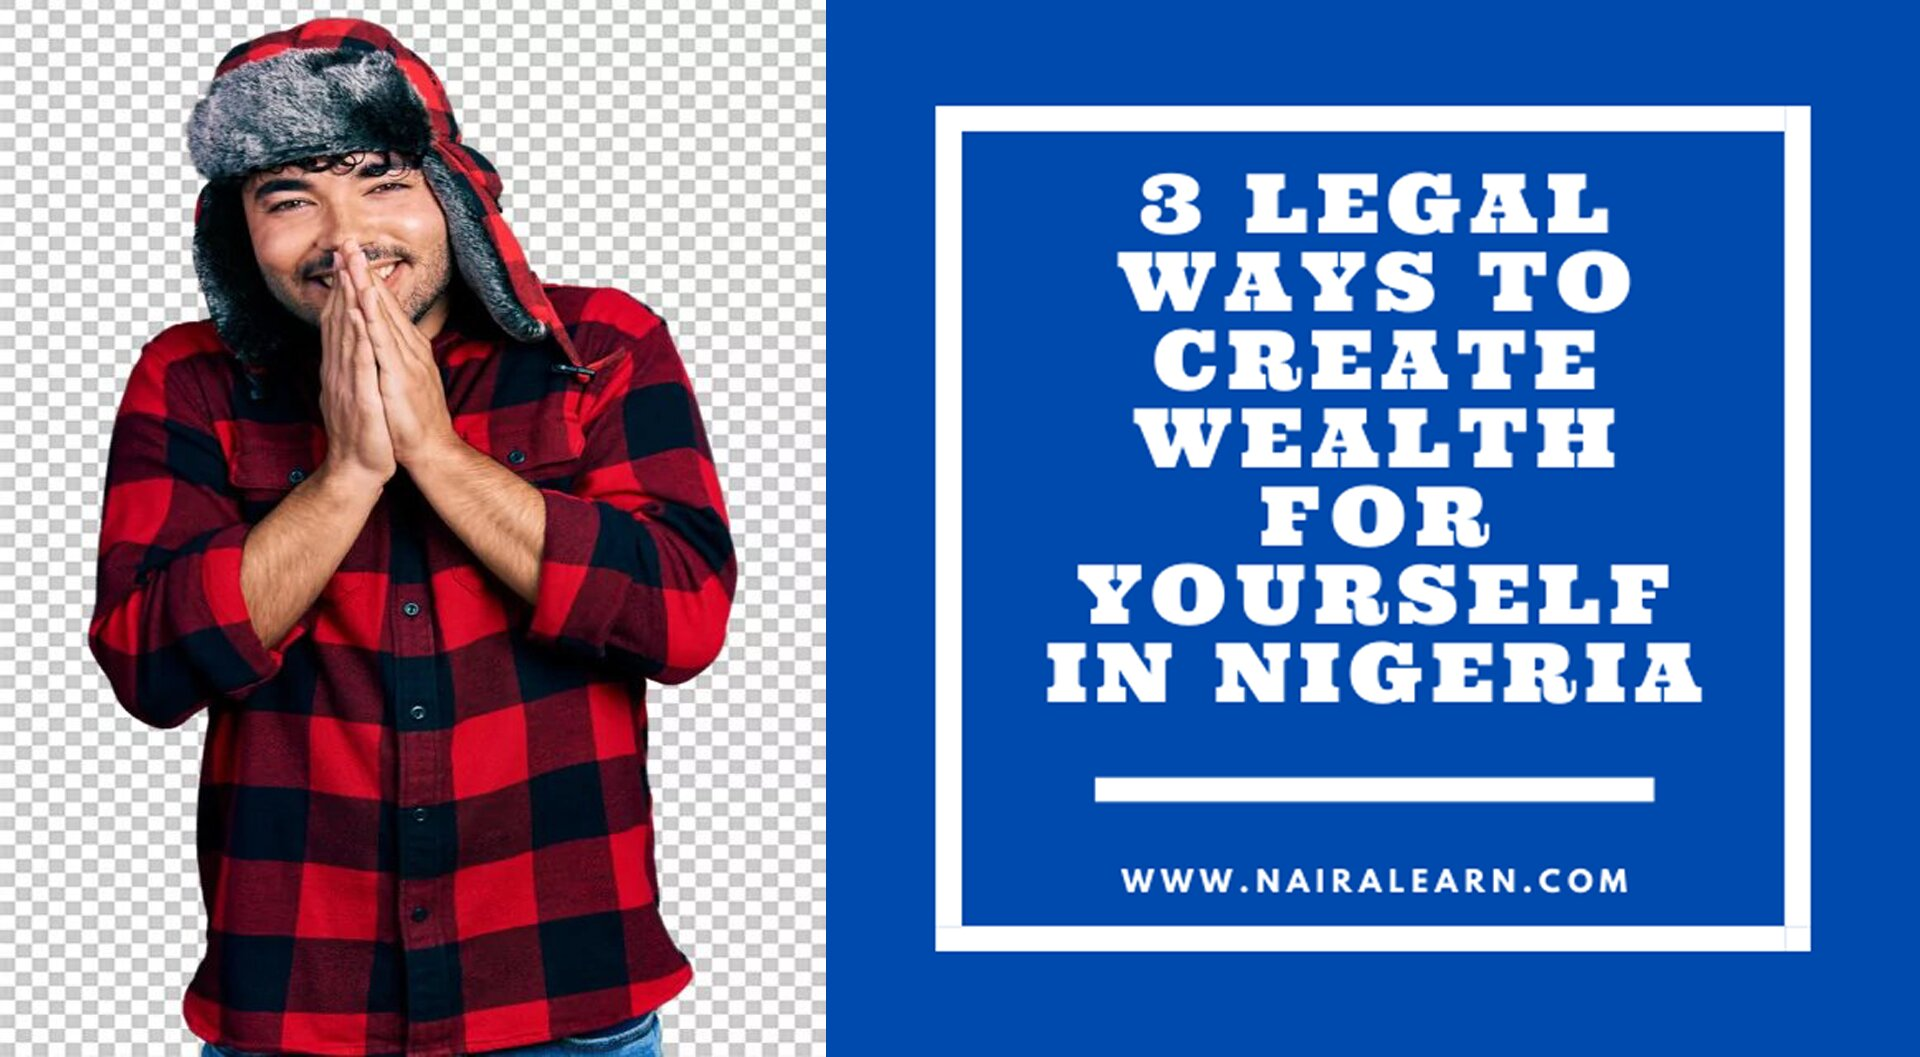 3 legal ways to create wealth